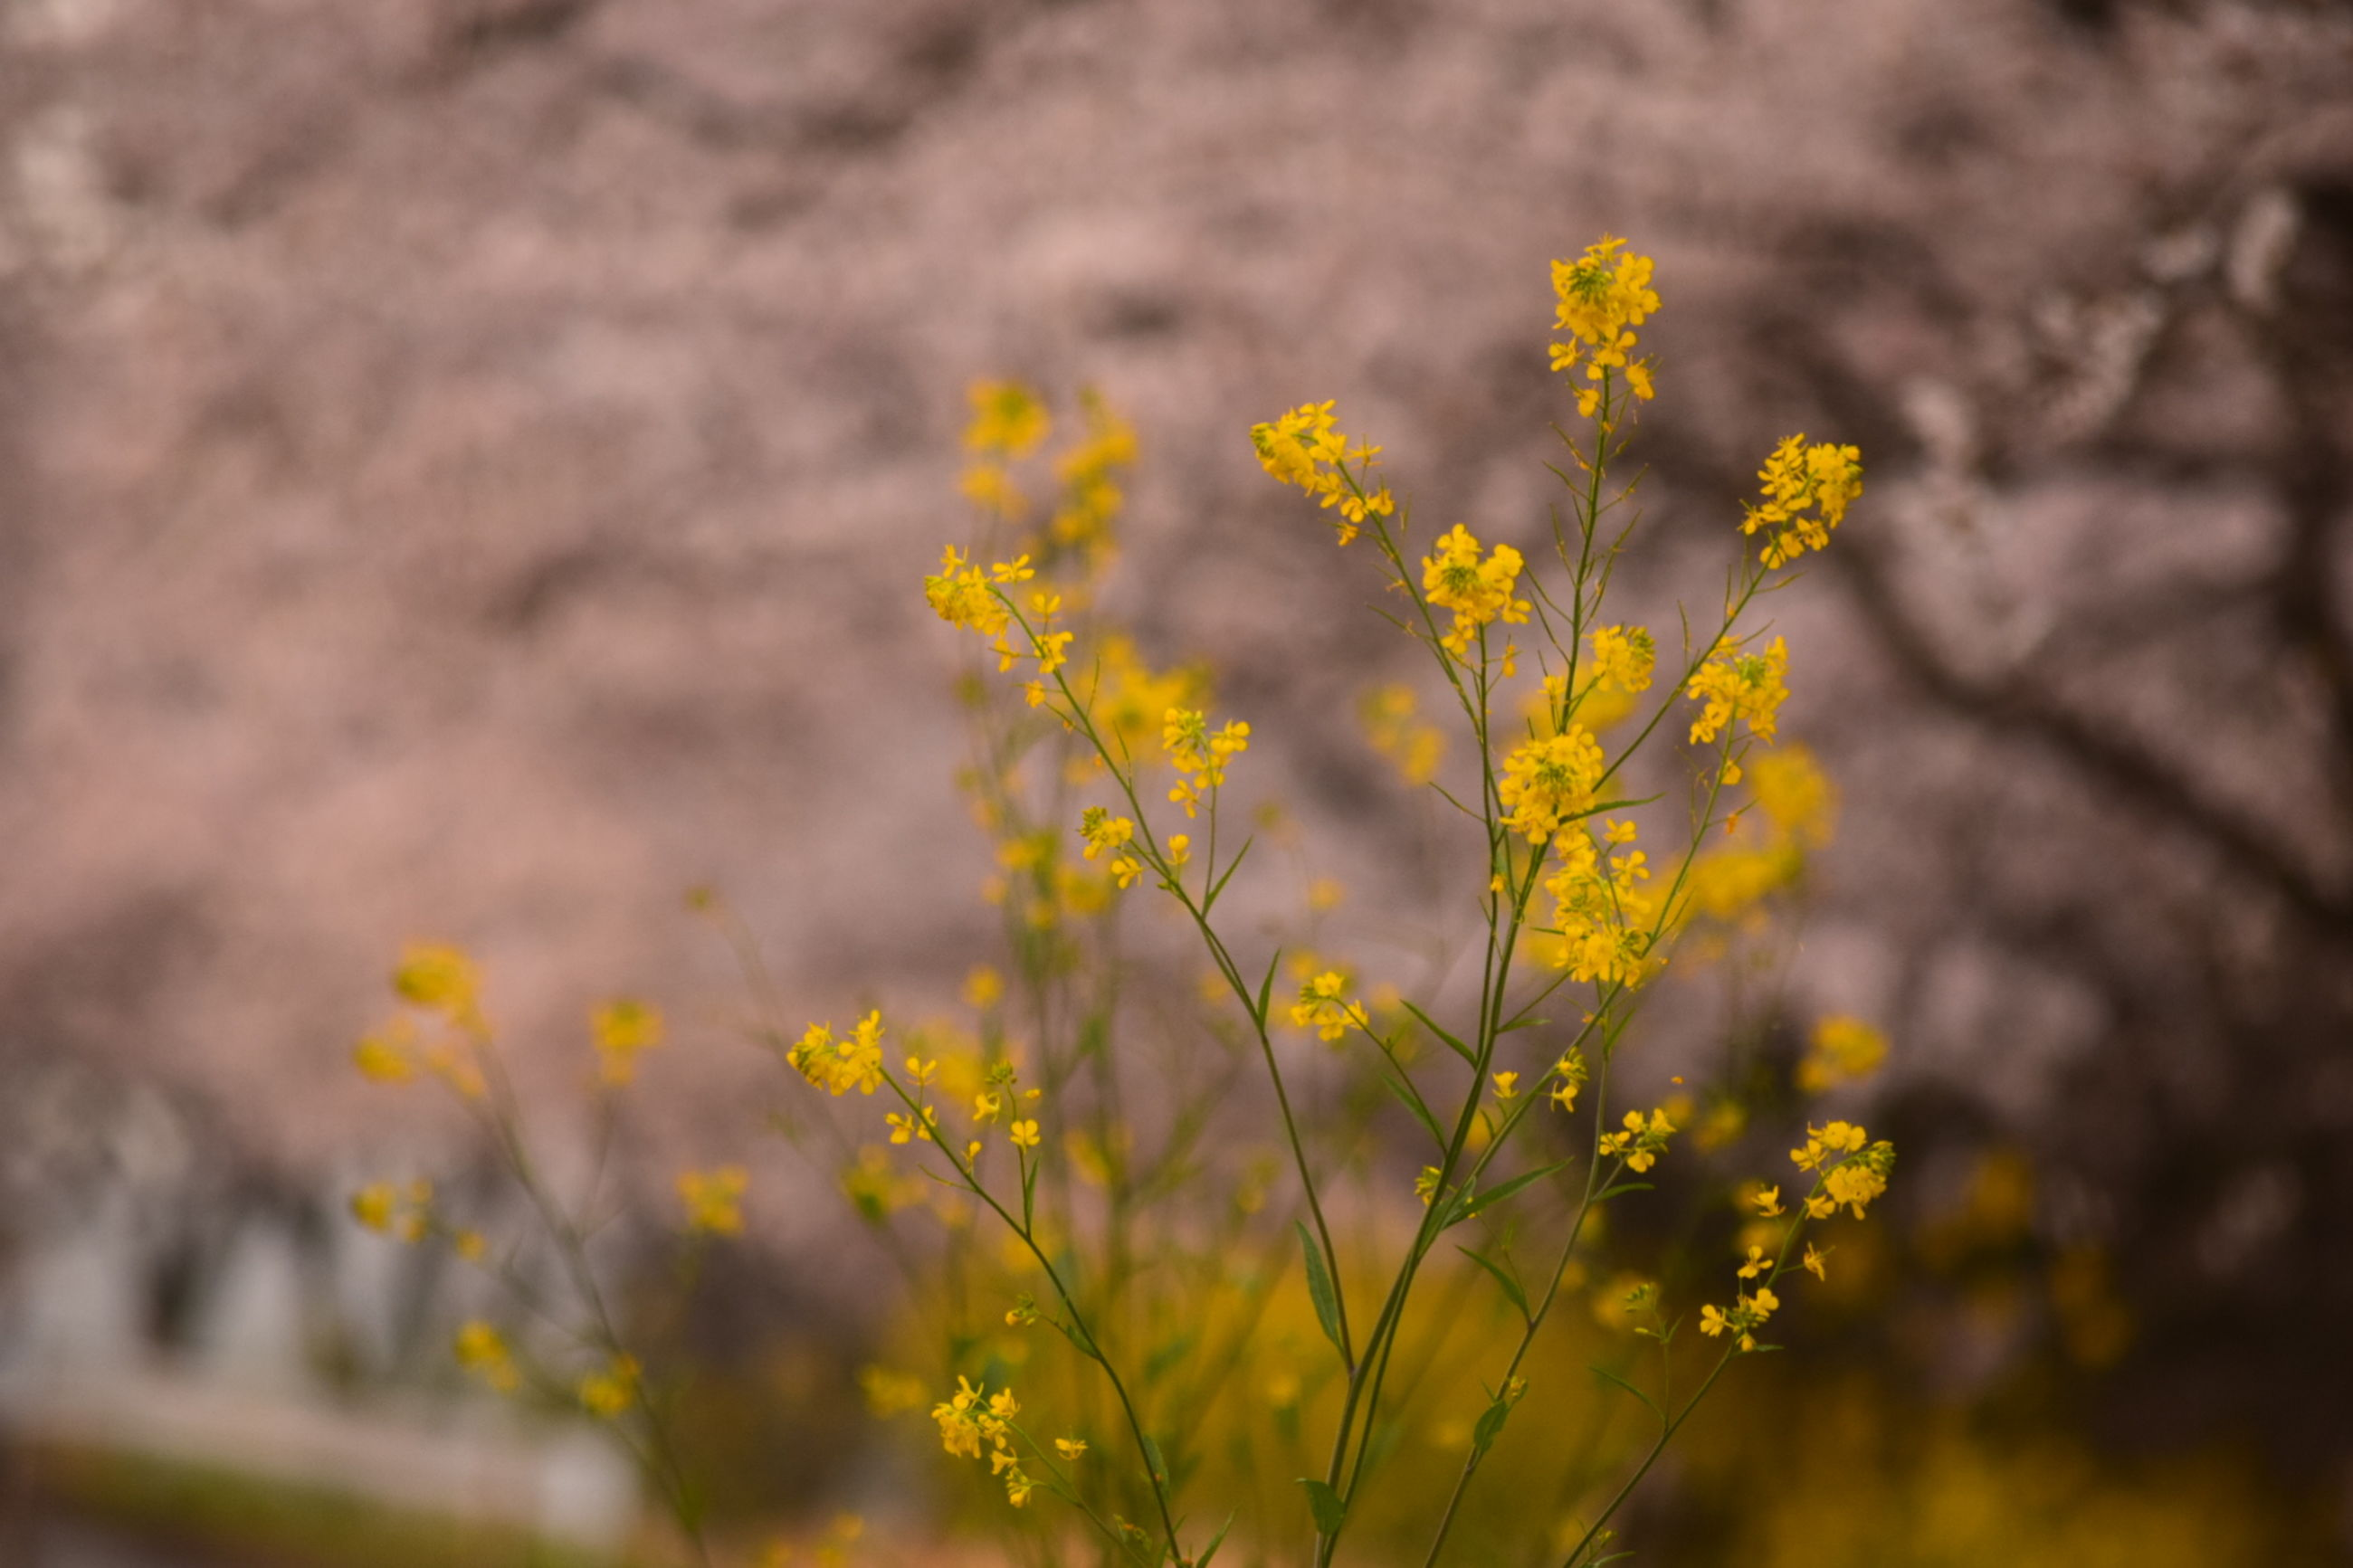 yellow, flower, growth, fragility, freshness, focus on foreground, beauty in nature, petal, plant, nature, selective focus, close-up, blooming, field, flower head, day, outdoors, stem, no people, in bloom